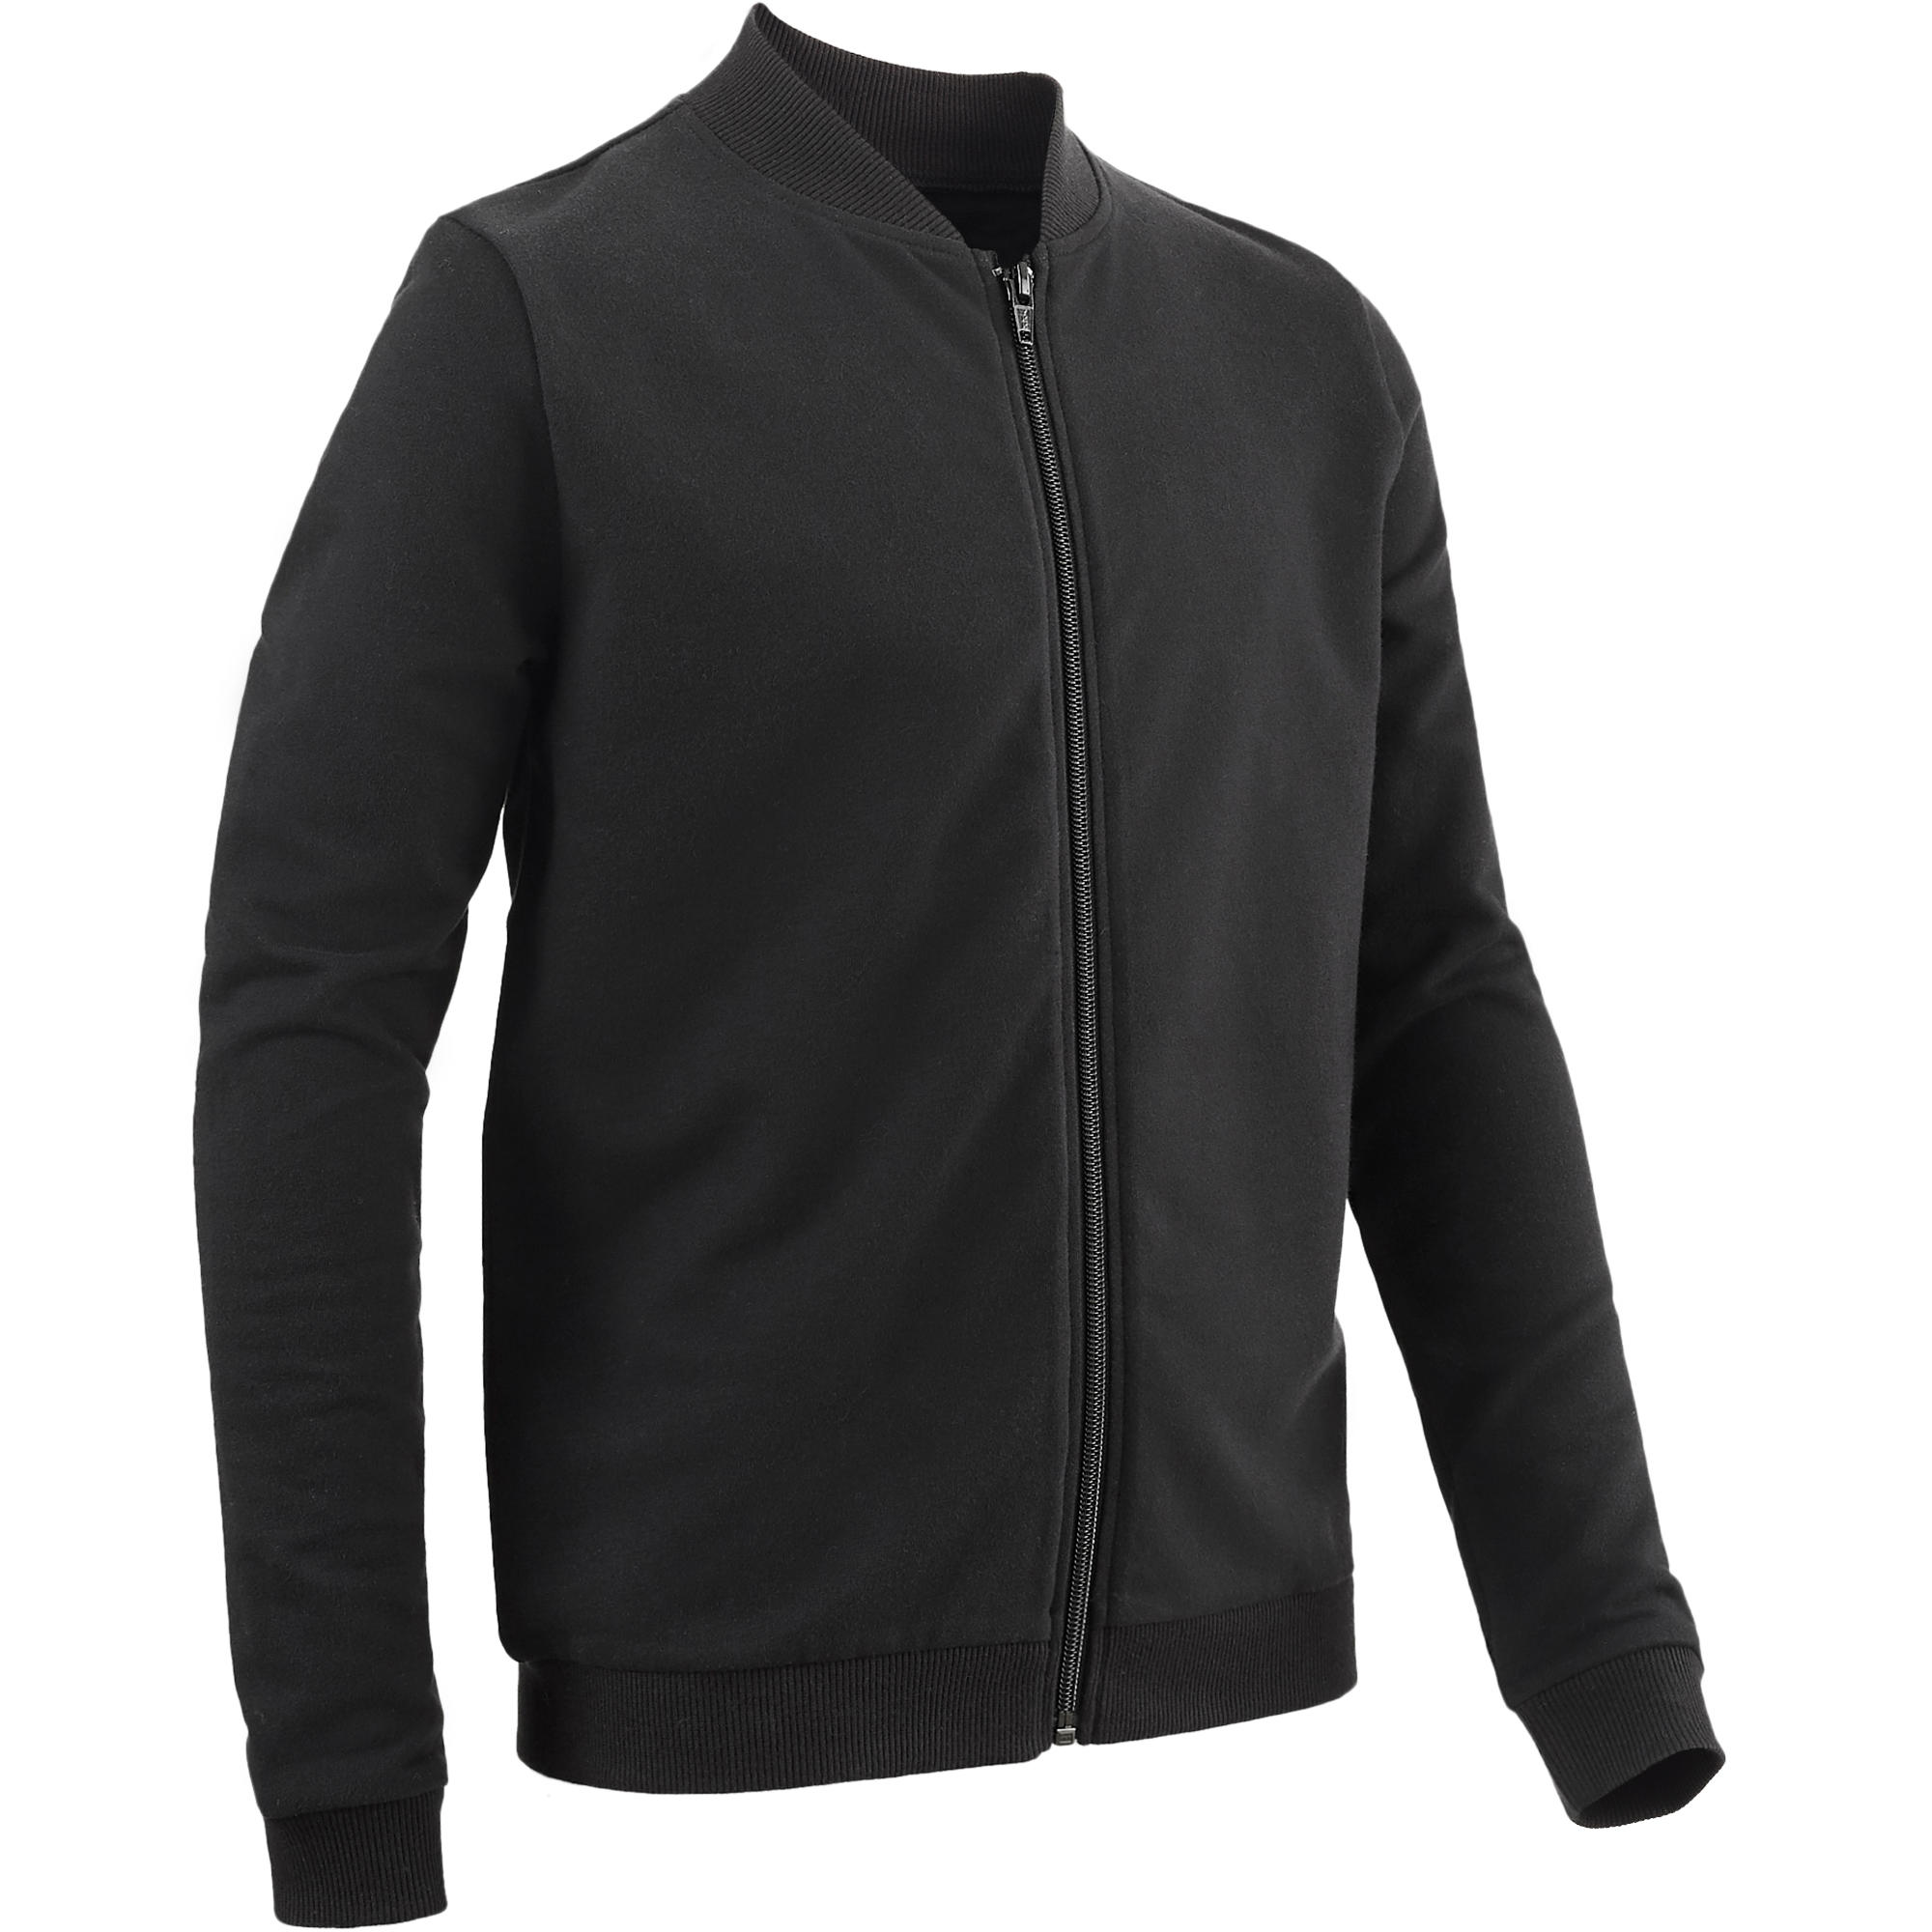 100 Boys' Gym Jacket - Black